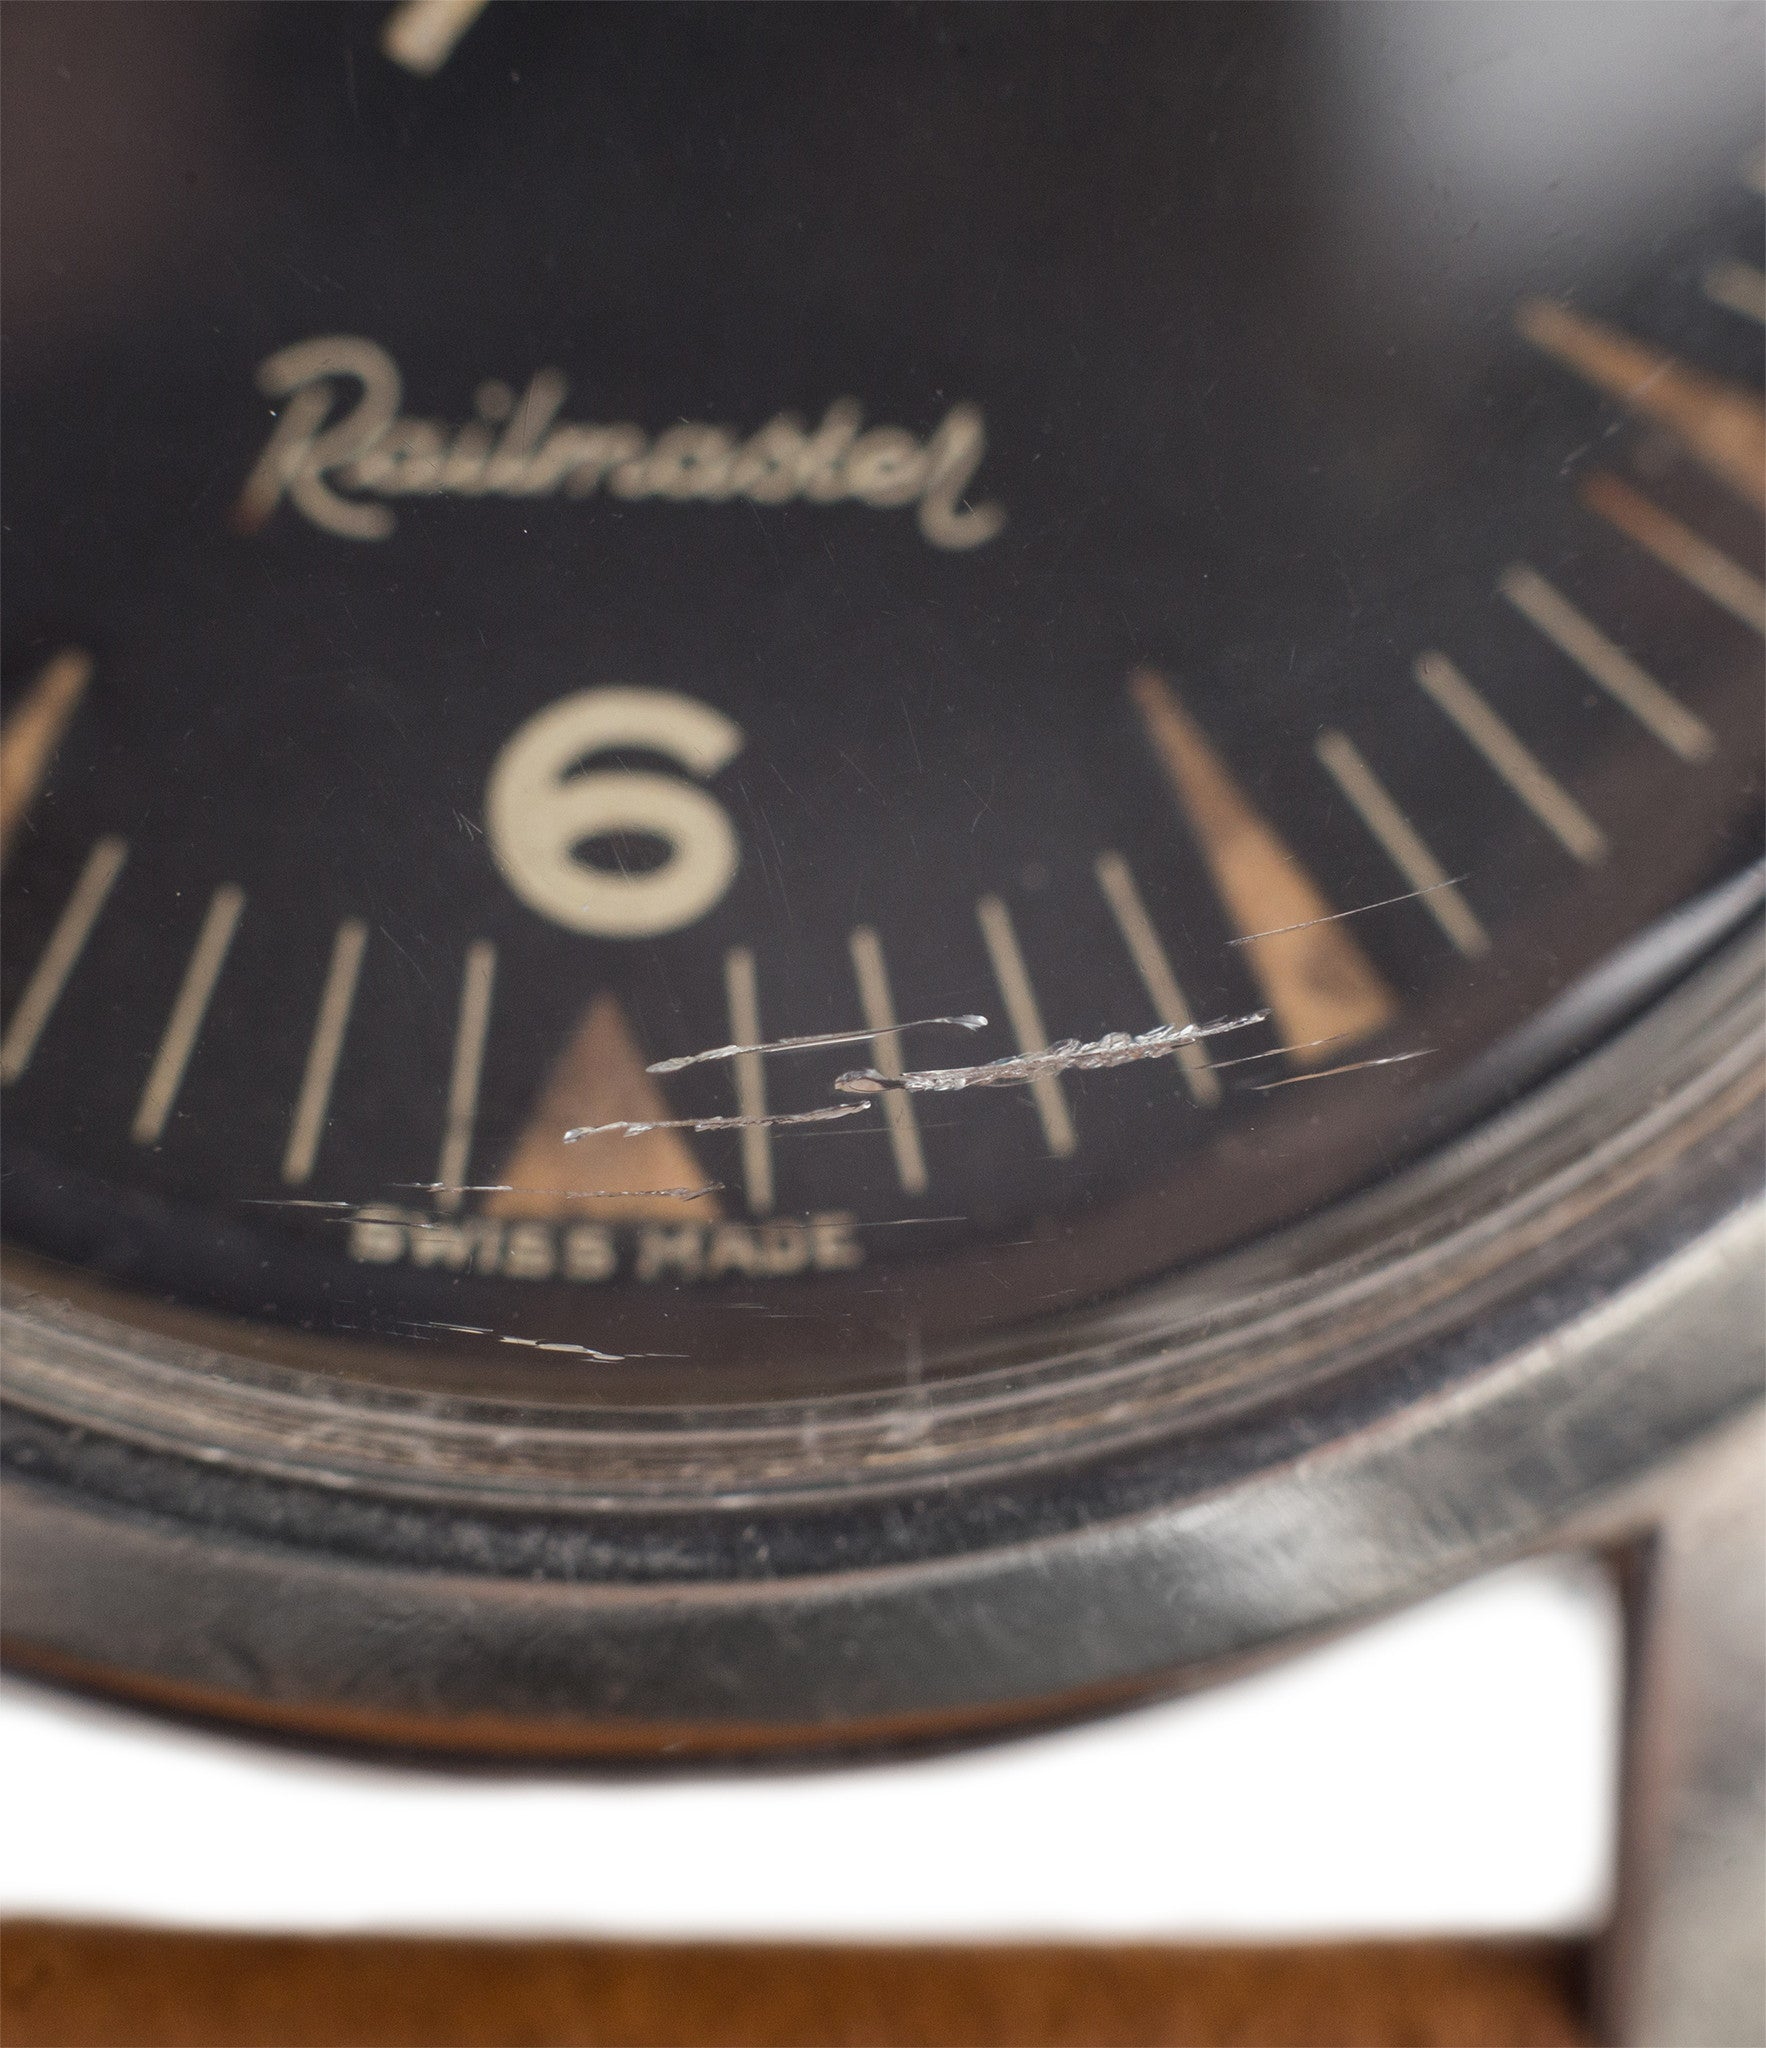 buy Omega Railmaster CK 2914 vintage watch black dial broad-arrow hands for sale